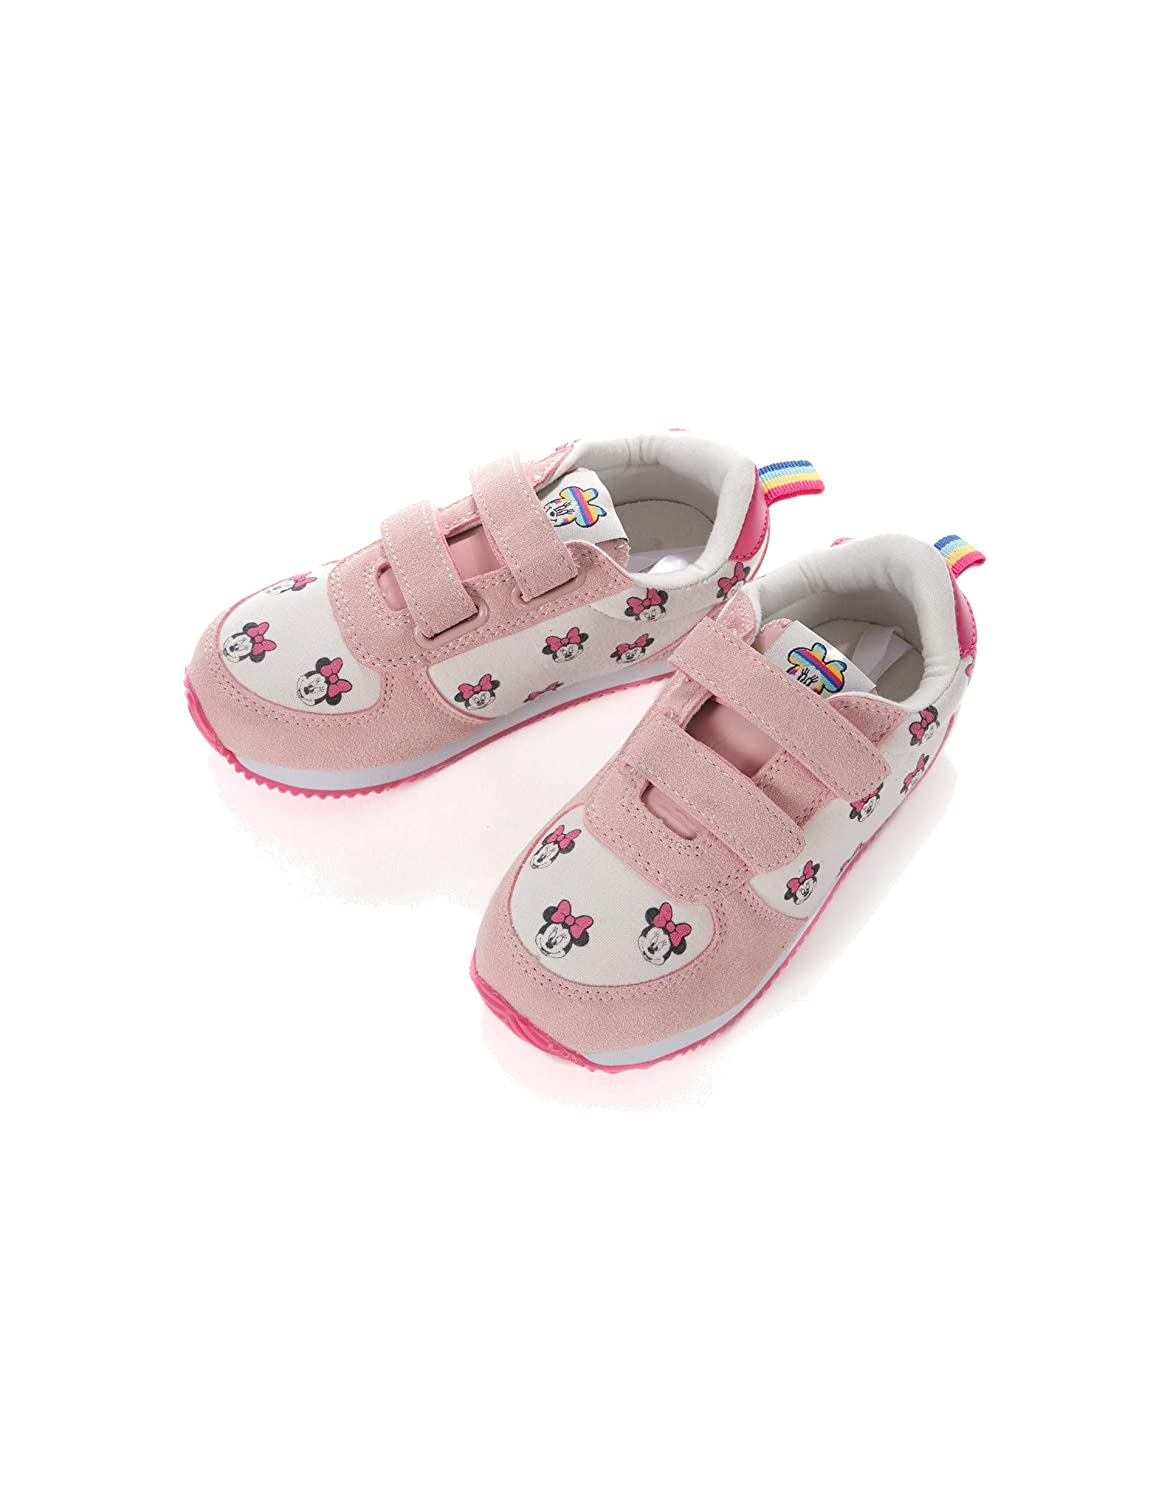 Baskets Enfiler Fille ZIPPY Zapatillas Minnie Mouse Para Ni/ña